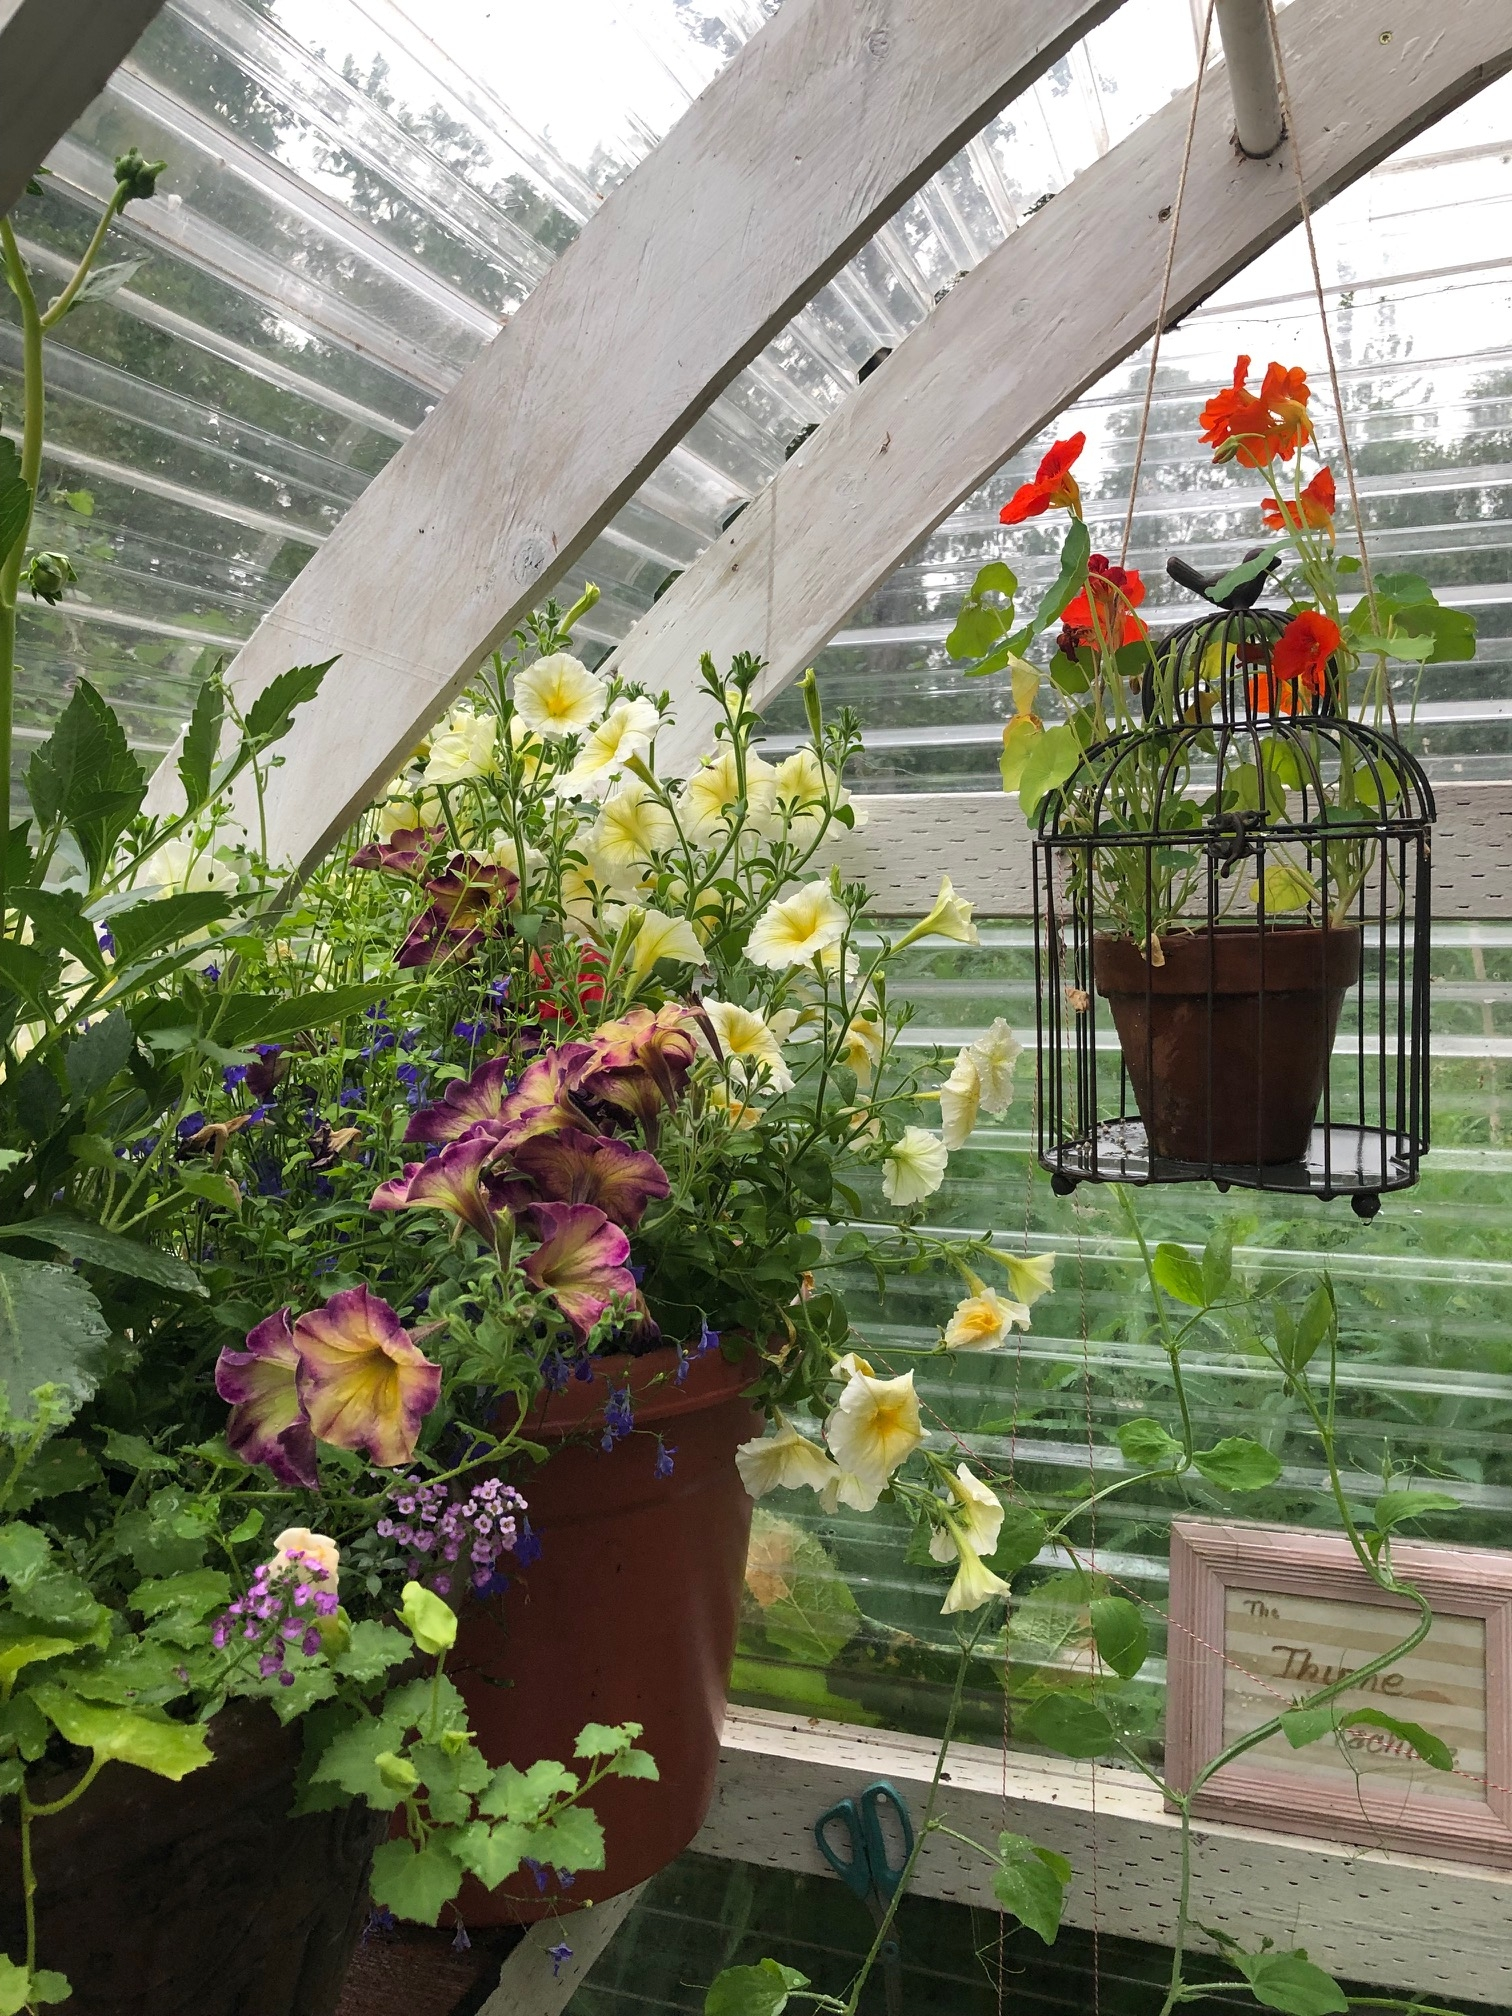 A bird cage sprouts nasturtiums above pots of petunias